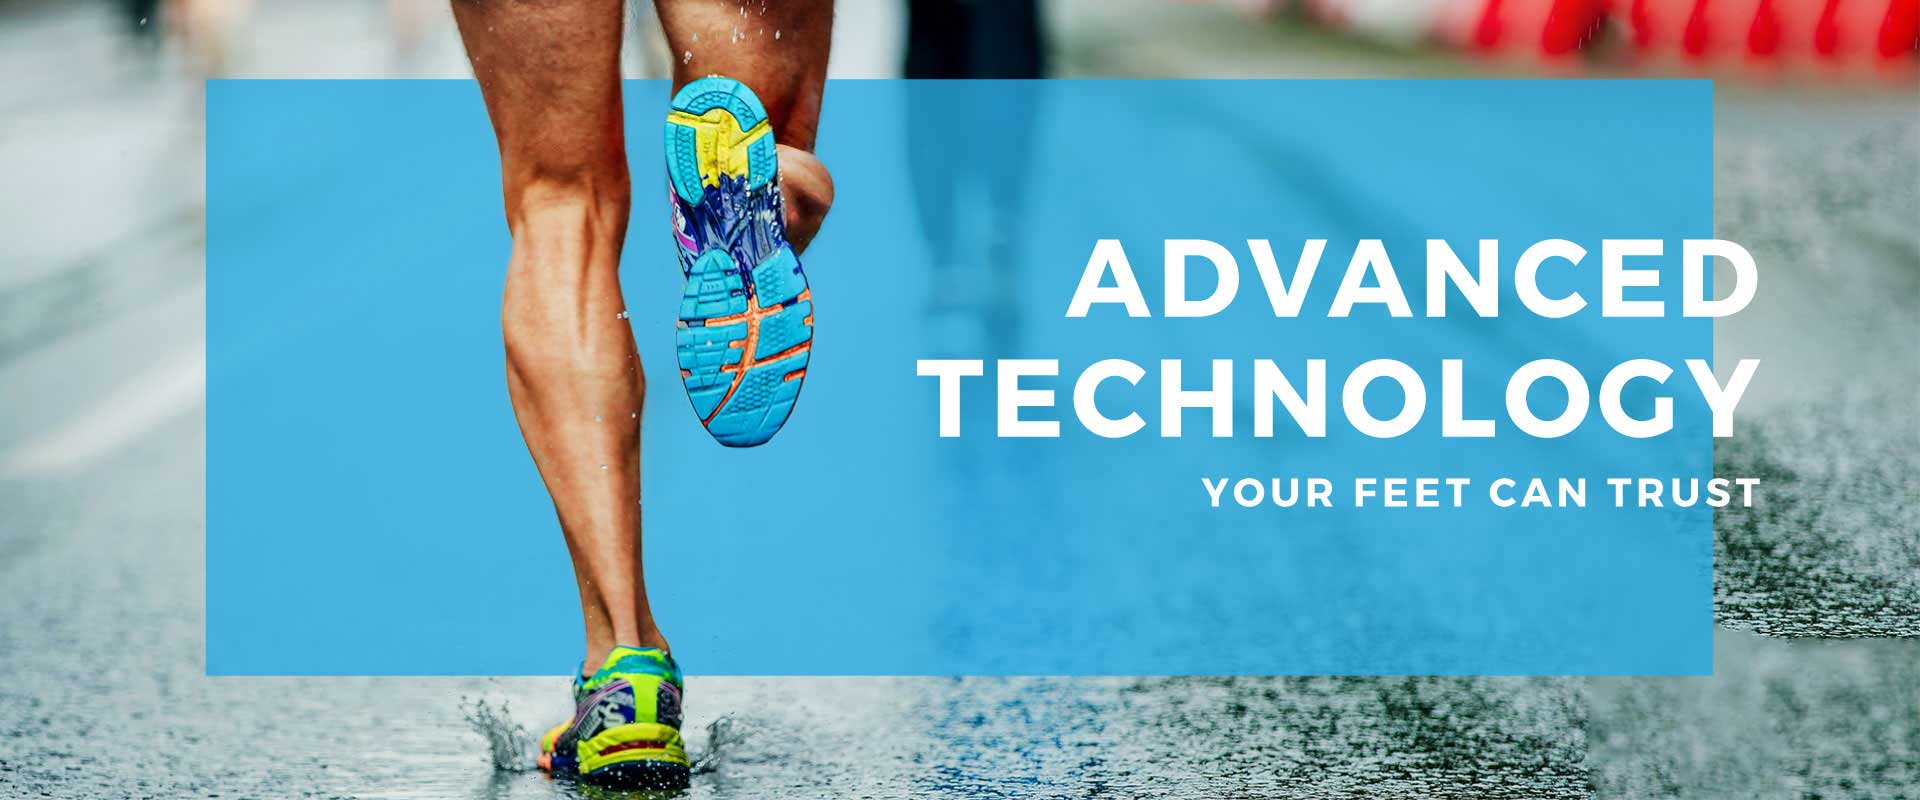 The Foot and Ankle Center St Louis MO Advanced Technology